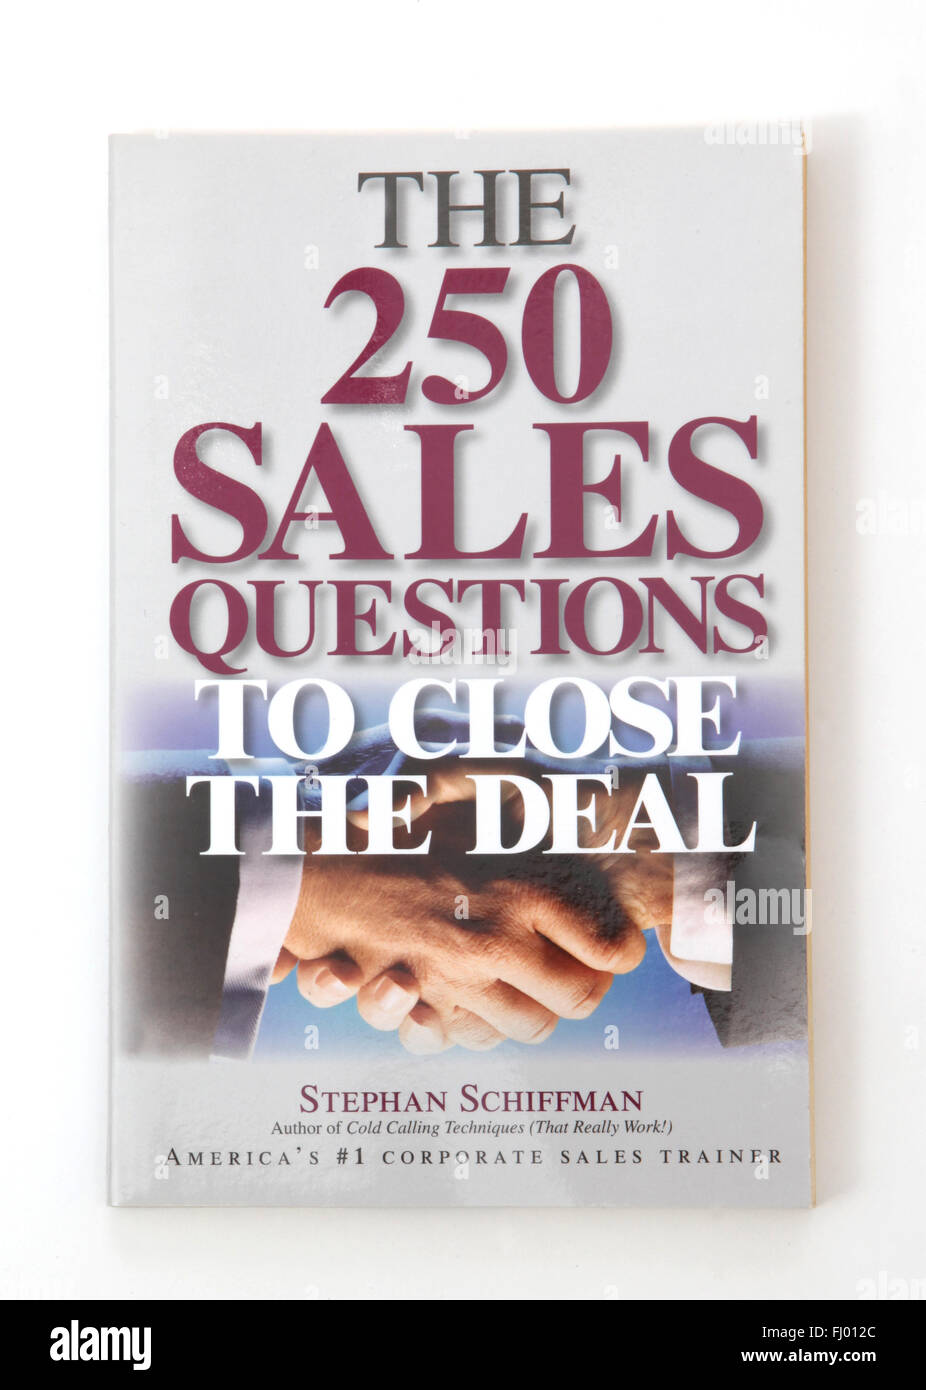 The book The 250 Sales Questions to Close the Deal by Stephan Schiffman - Stock Image